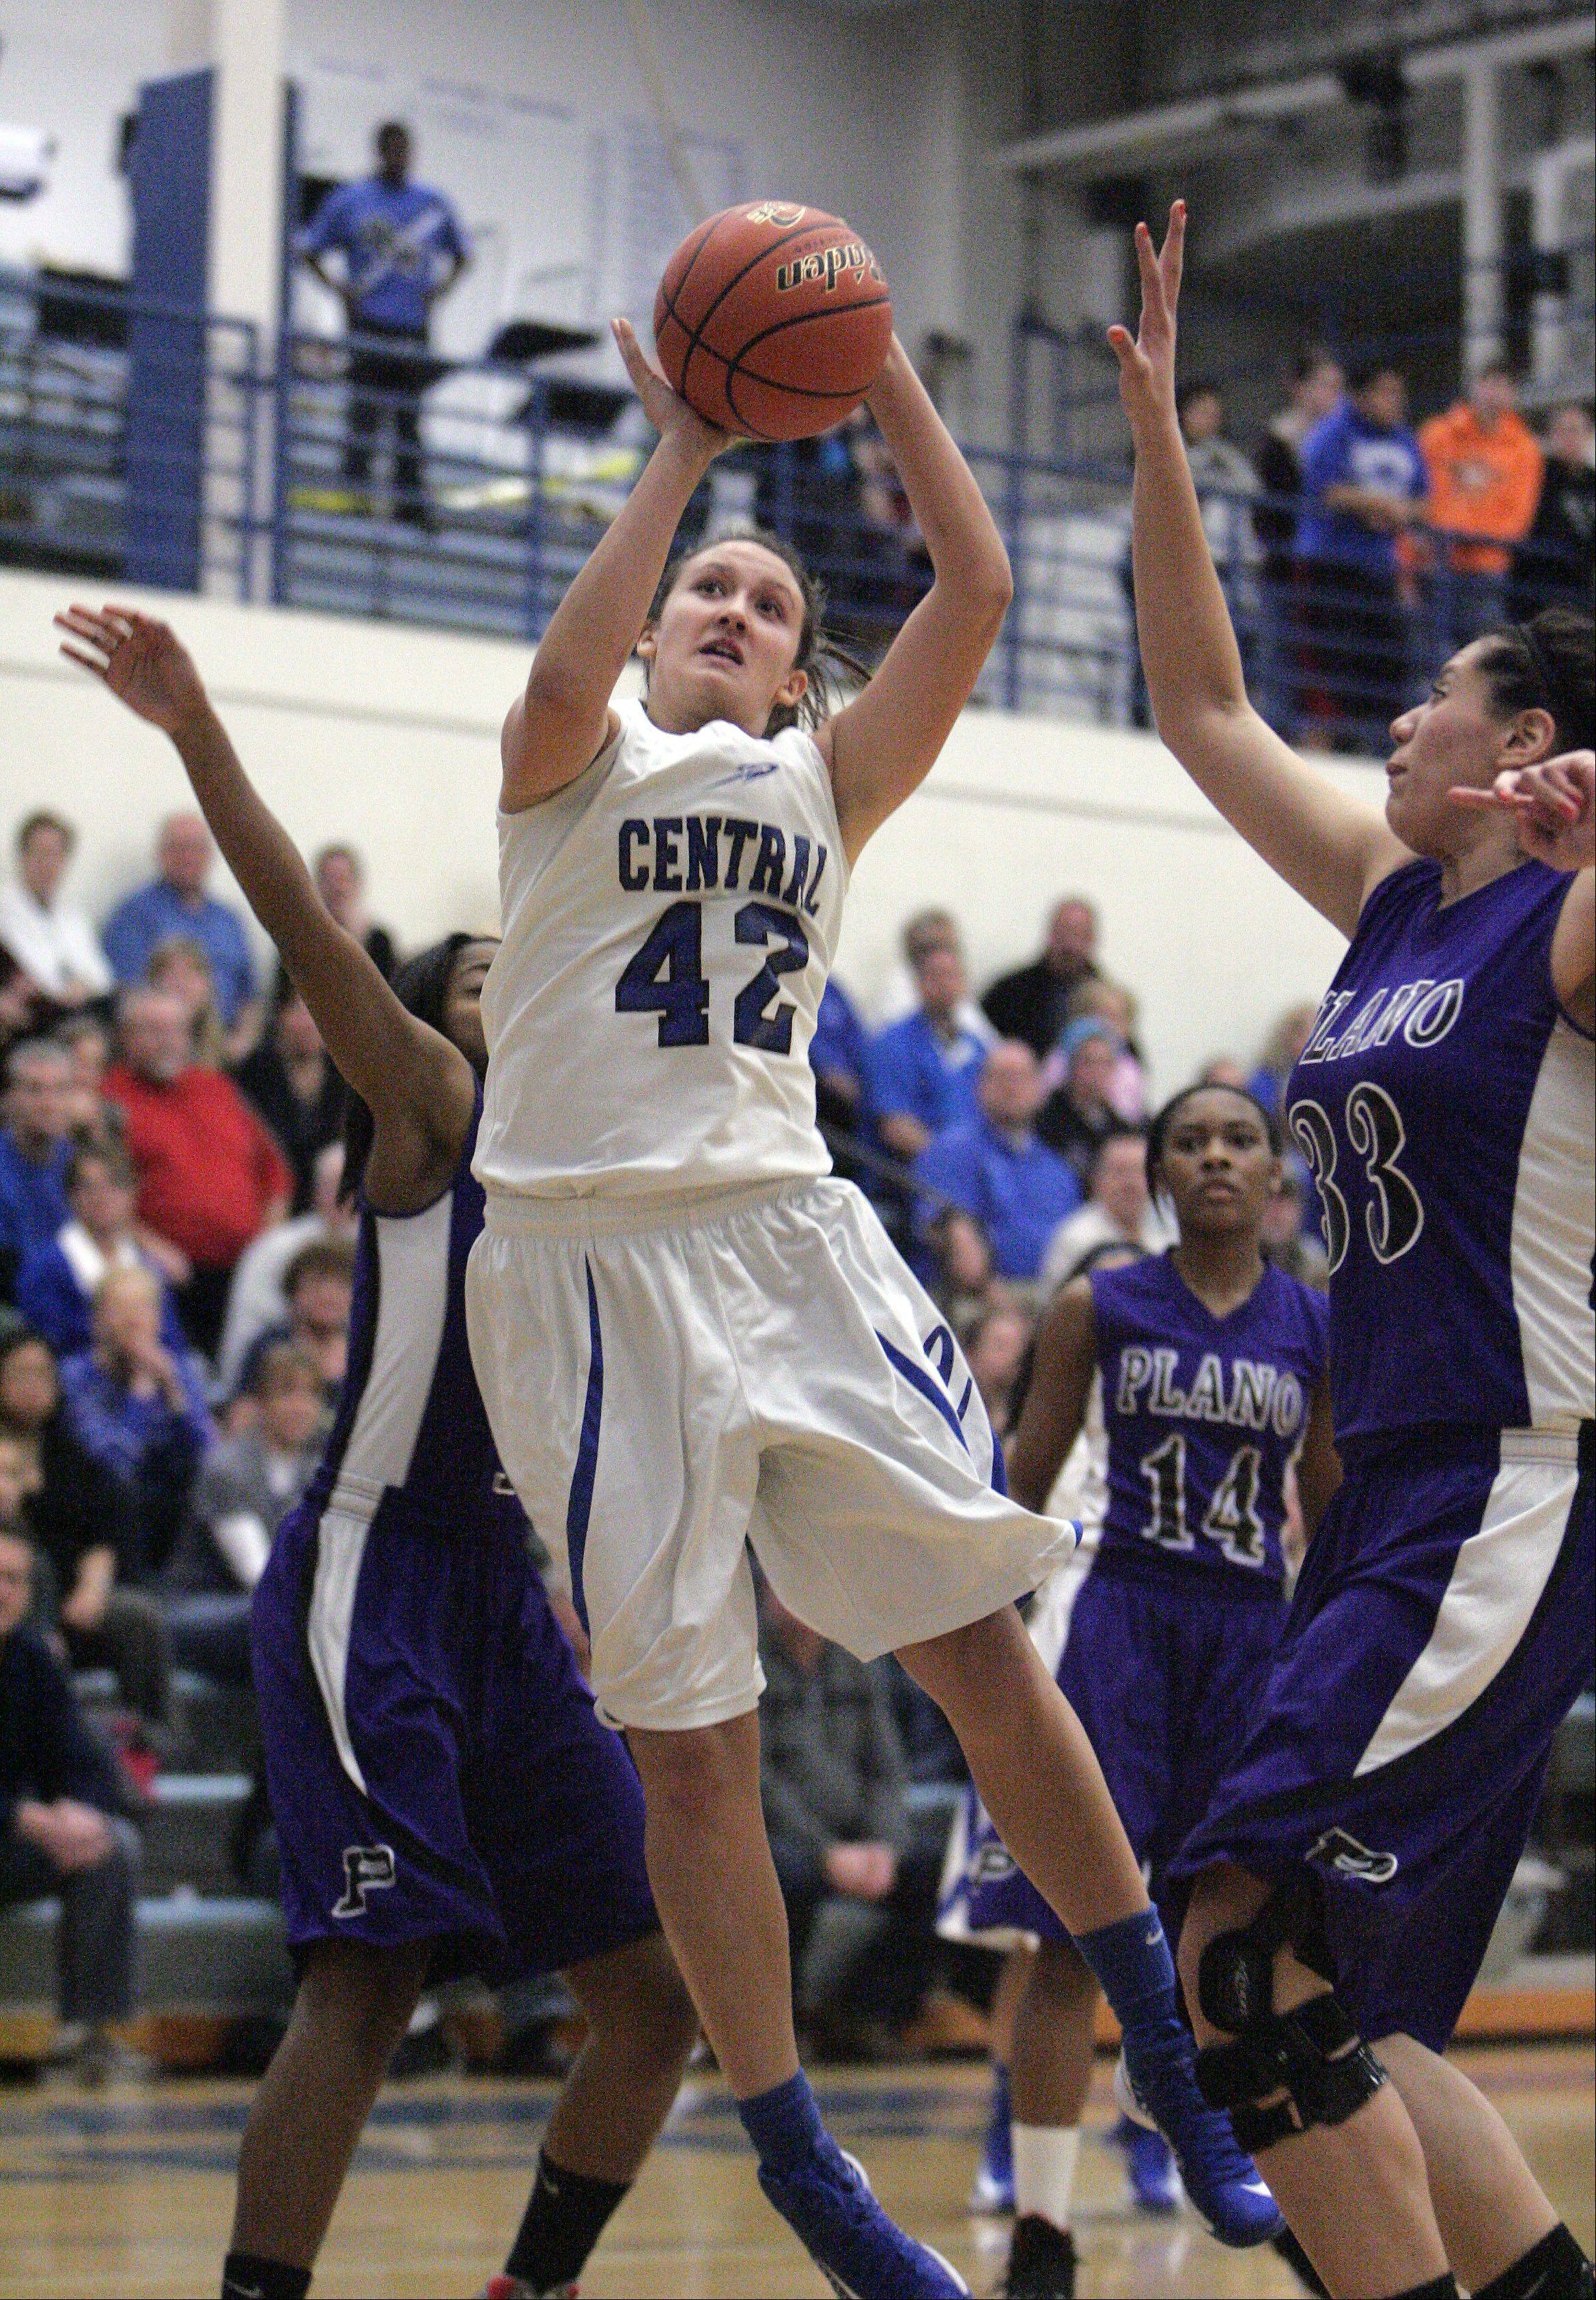 Burlington Central's Alison Colby (42) goes hard to the hoop past Plano's Clarisa Martinez (33) during the first quarter of Burlington Central's 38-34 Class 3A regional championship win Friday.